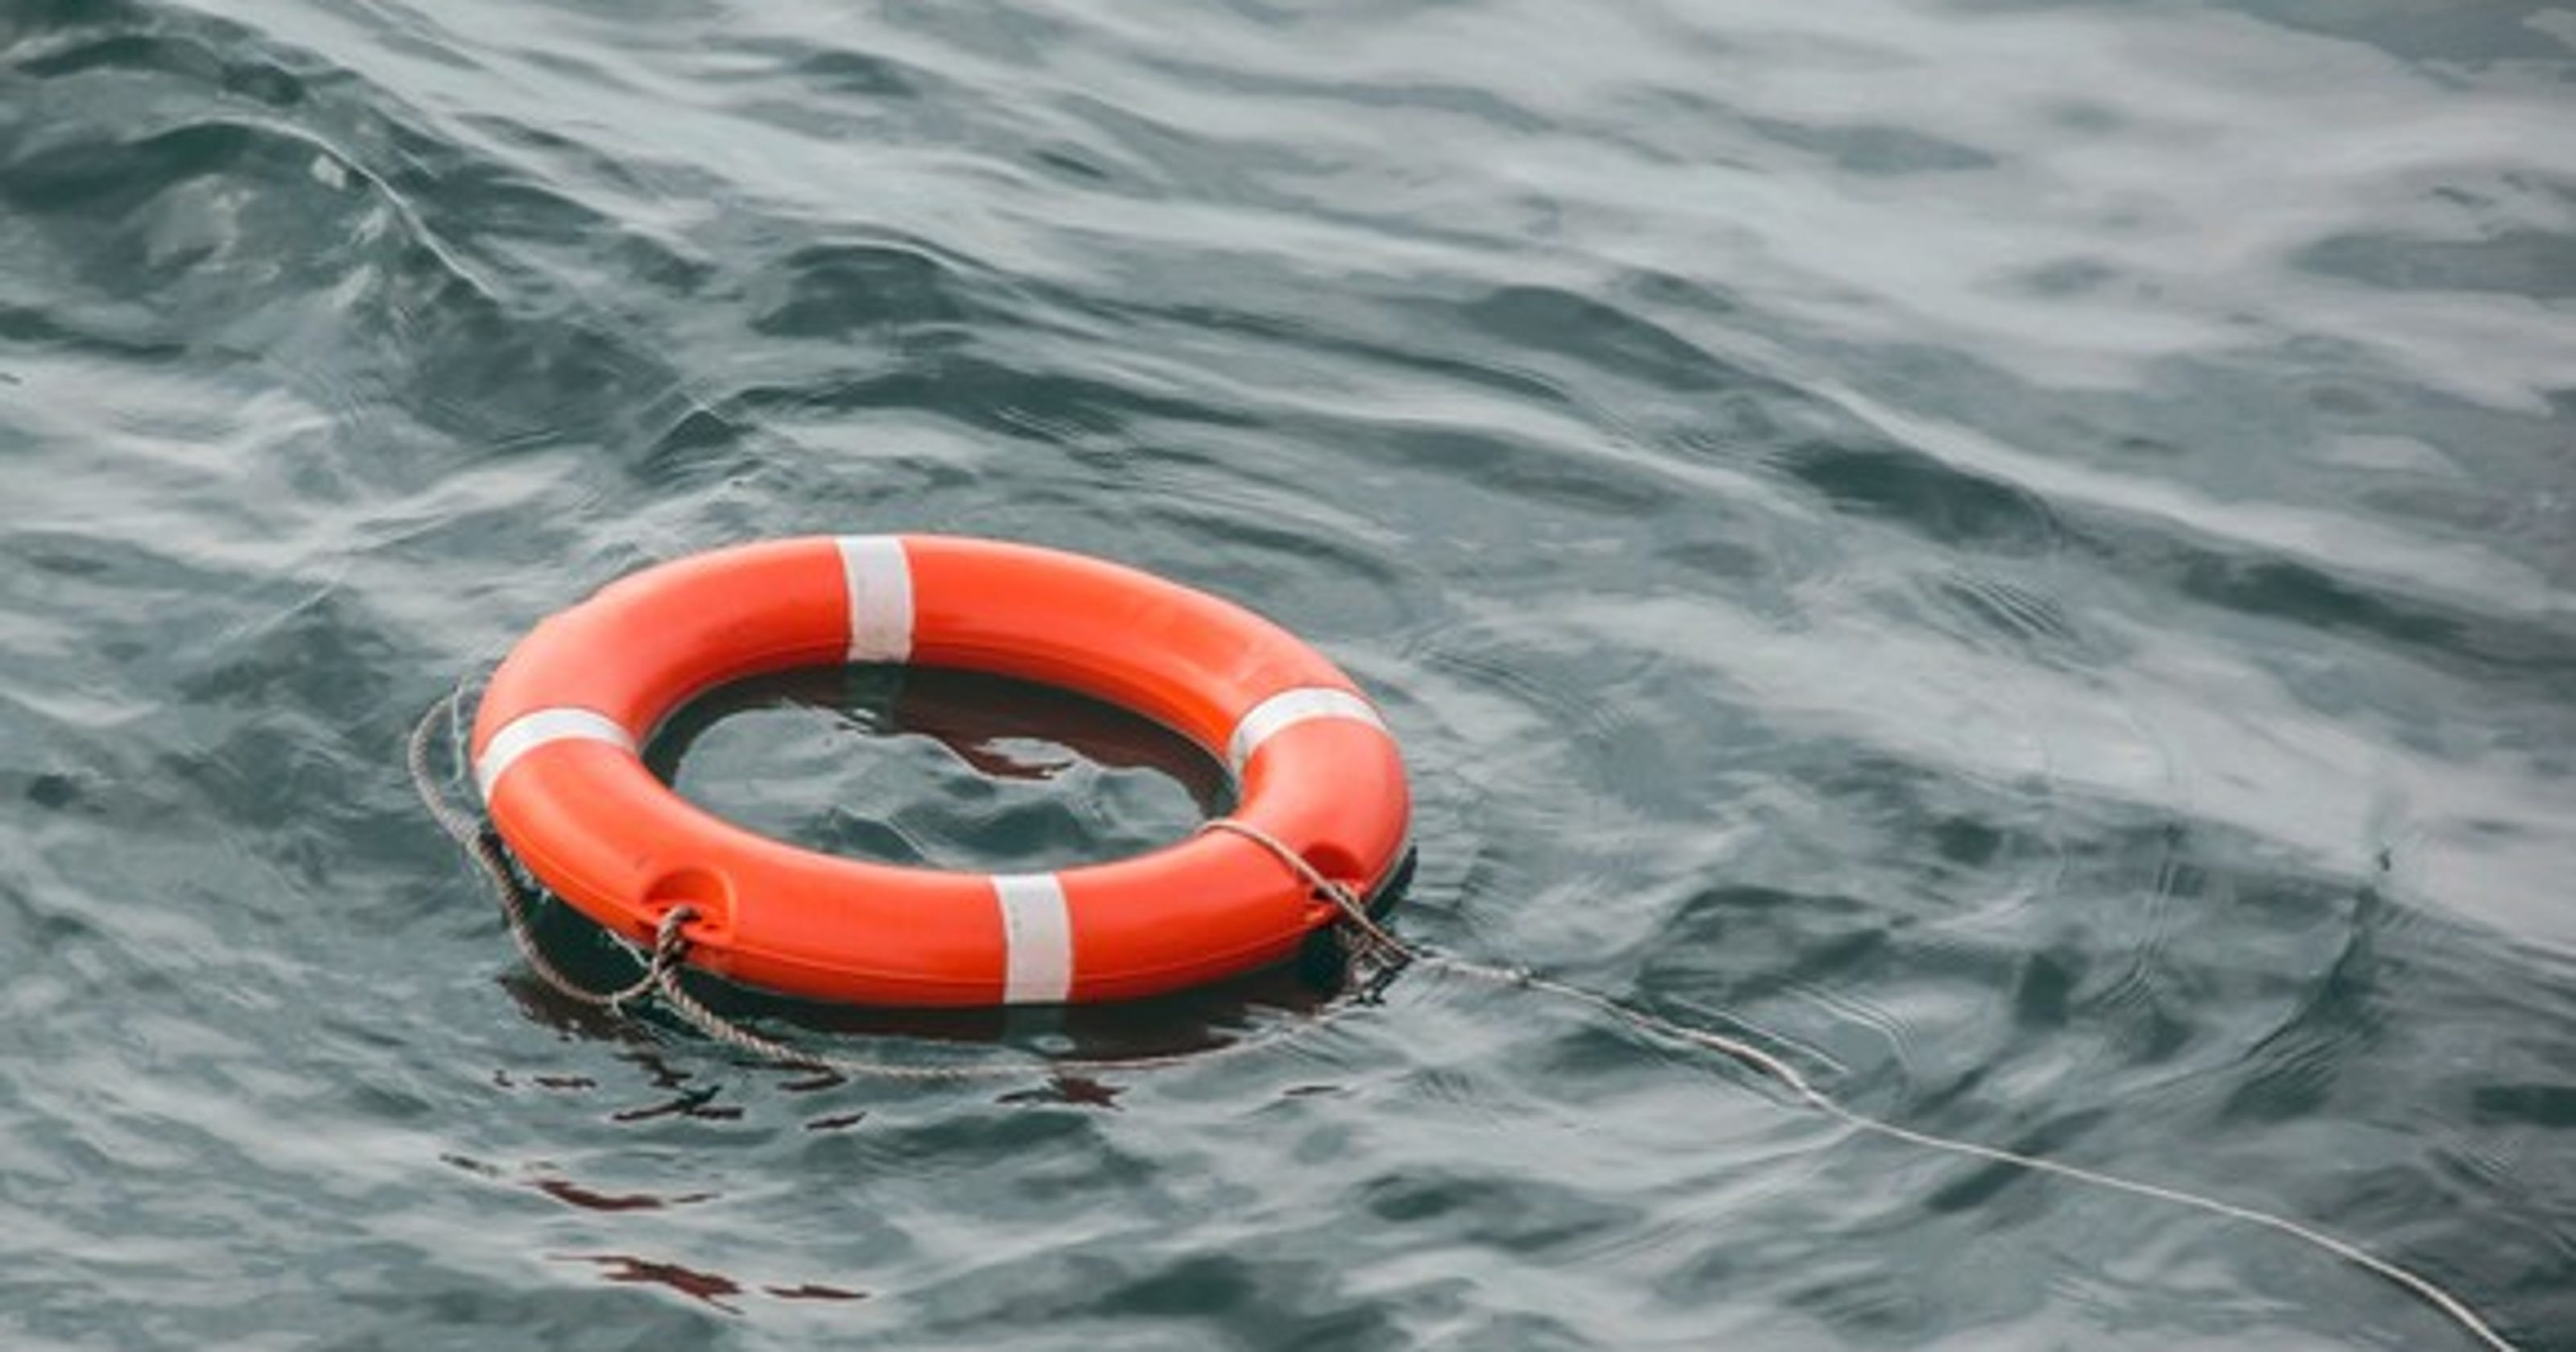 Port Huron boy, 12, pulled from St. Clair River after 31 minutes ...